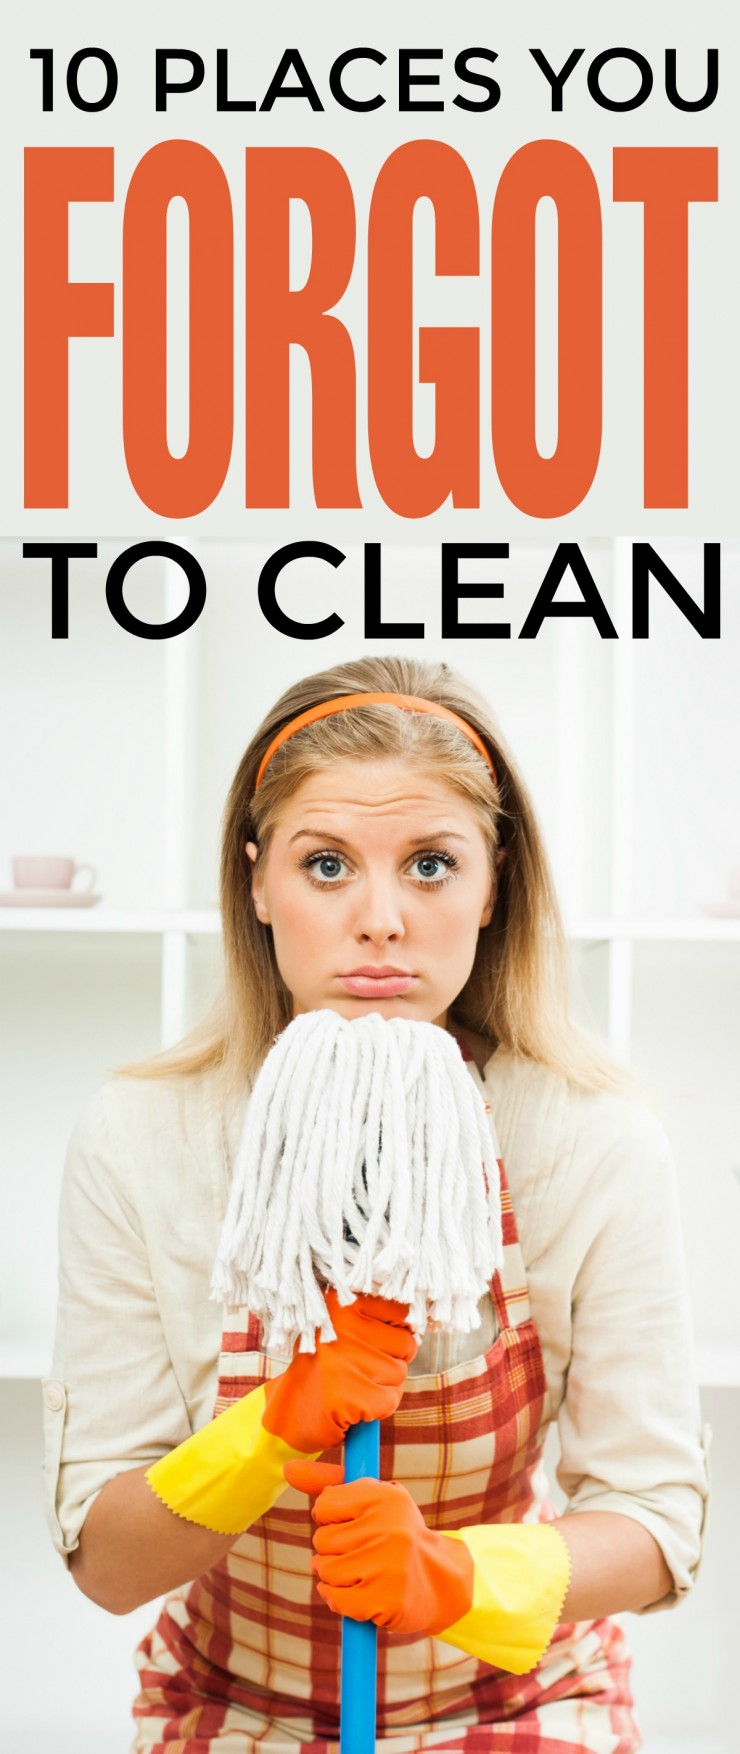 When it comes to deep cleaning your house you might think of all the usual spots to clean from baseboards to your oven. Let's face it though, there are a myriad of spots to tackle in a home and you are bound to miss a few. Check out these ten places you forgot to clean during your last spring cleaning!